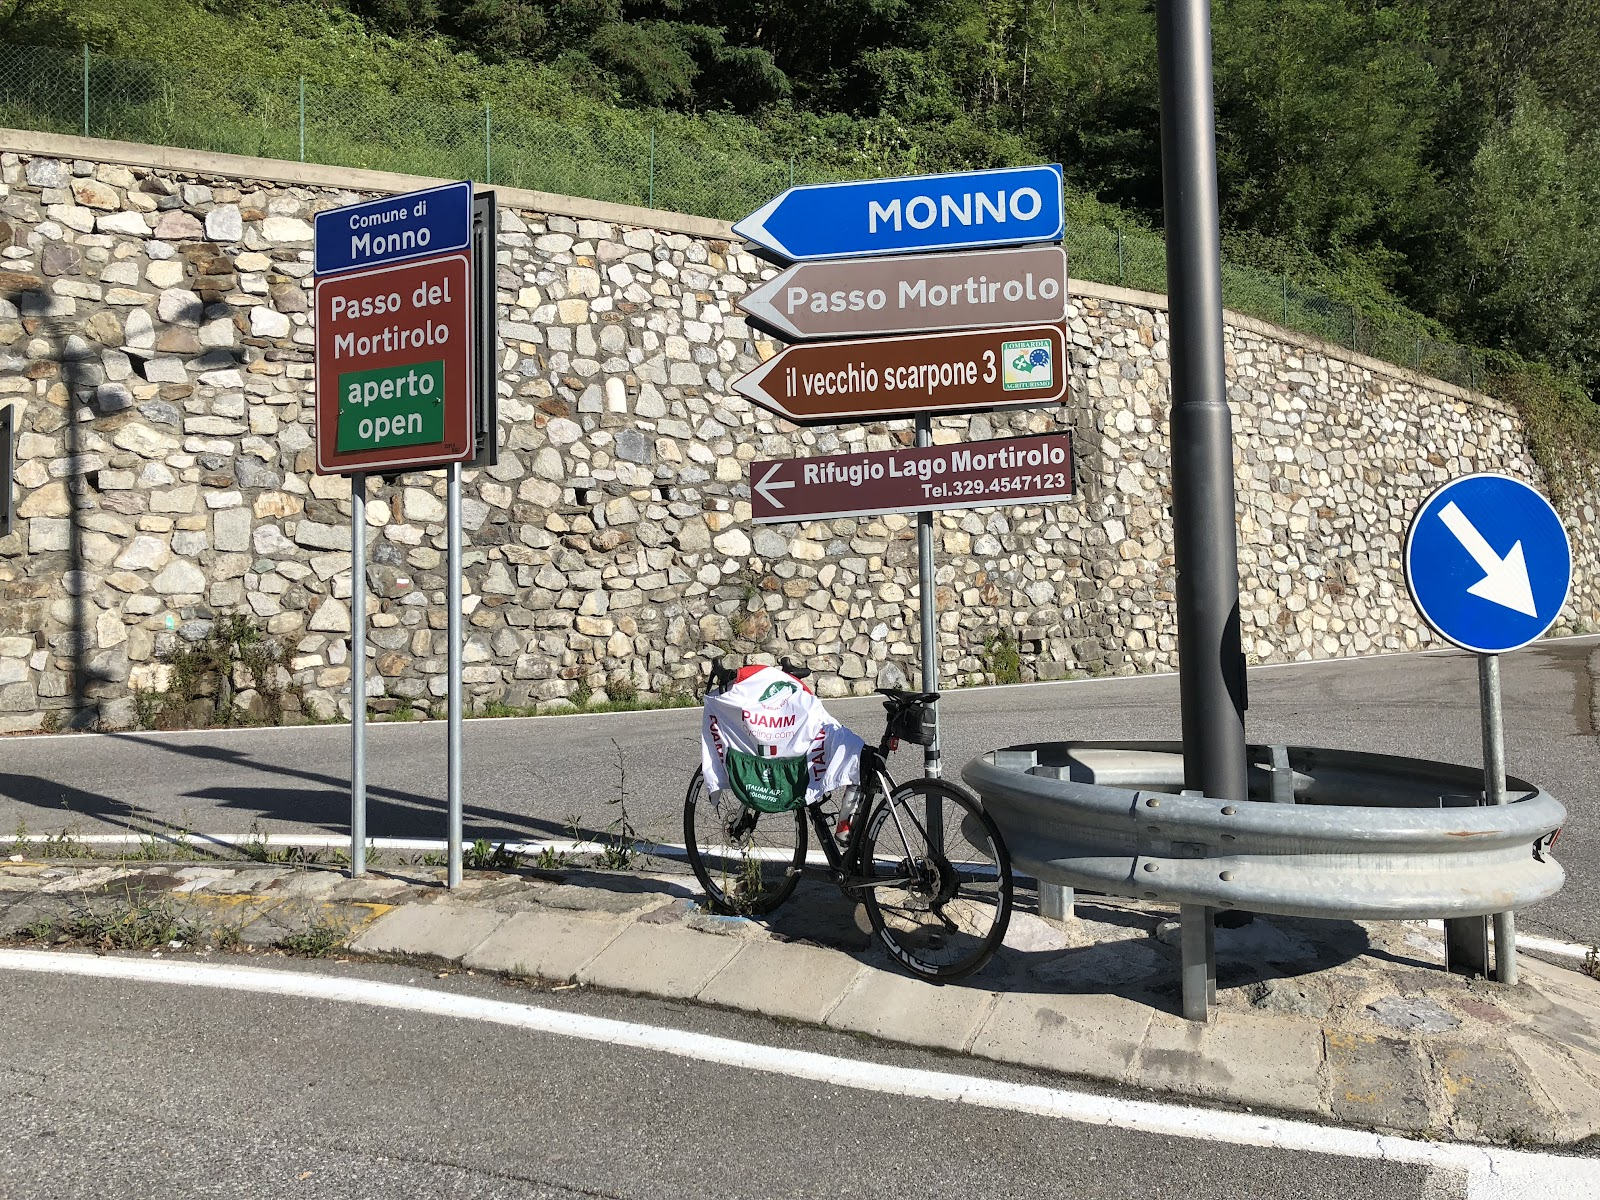 Climbing Passo del Mortirolo from Edolo - roadway sign with bike leaning against it.